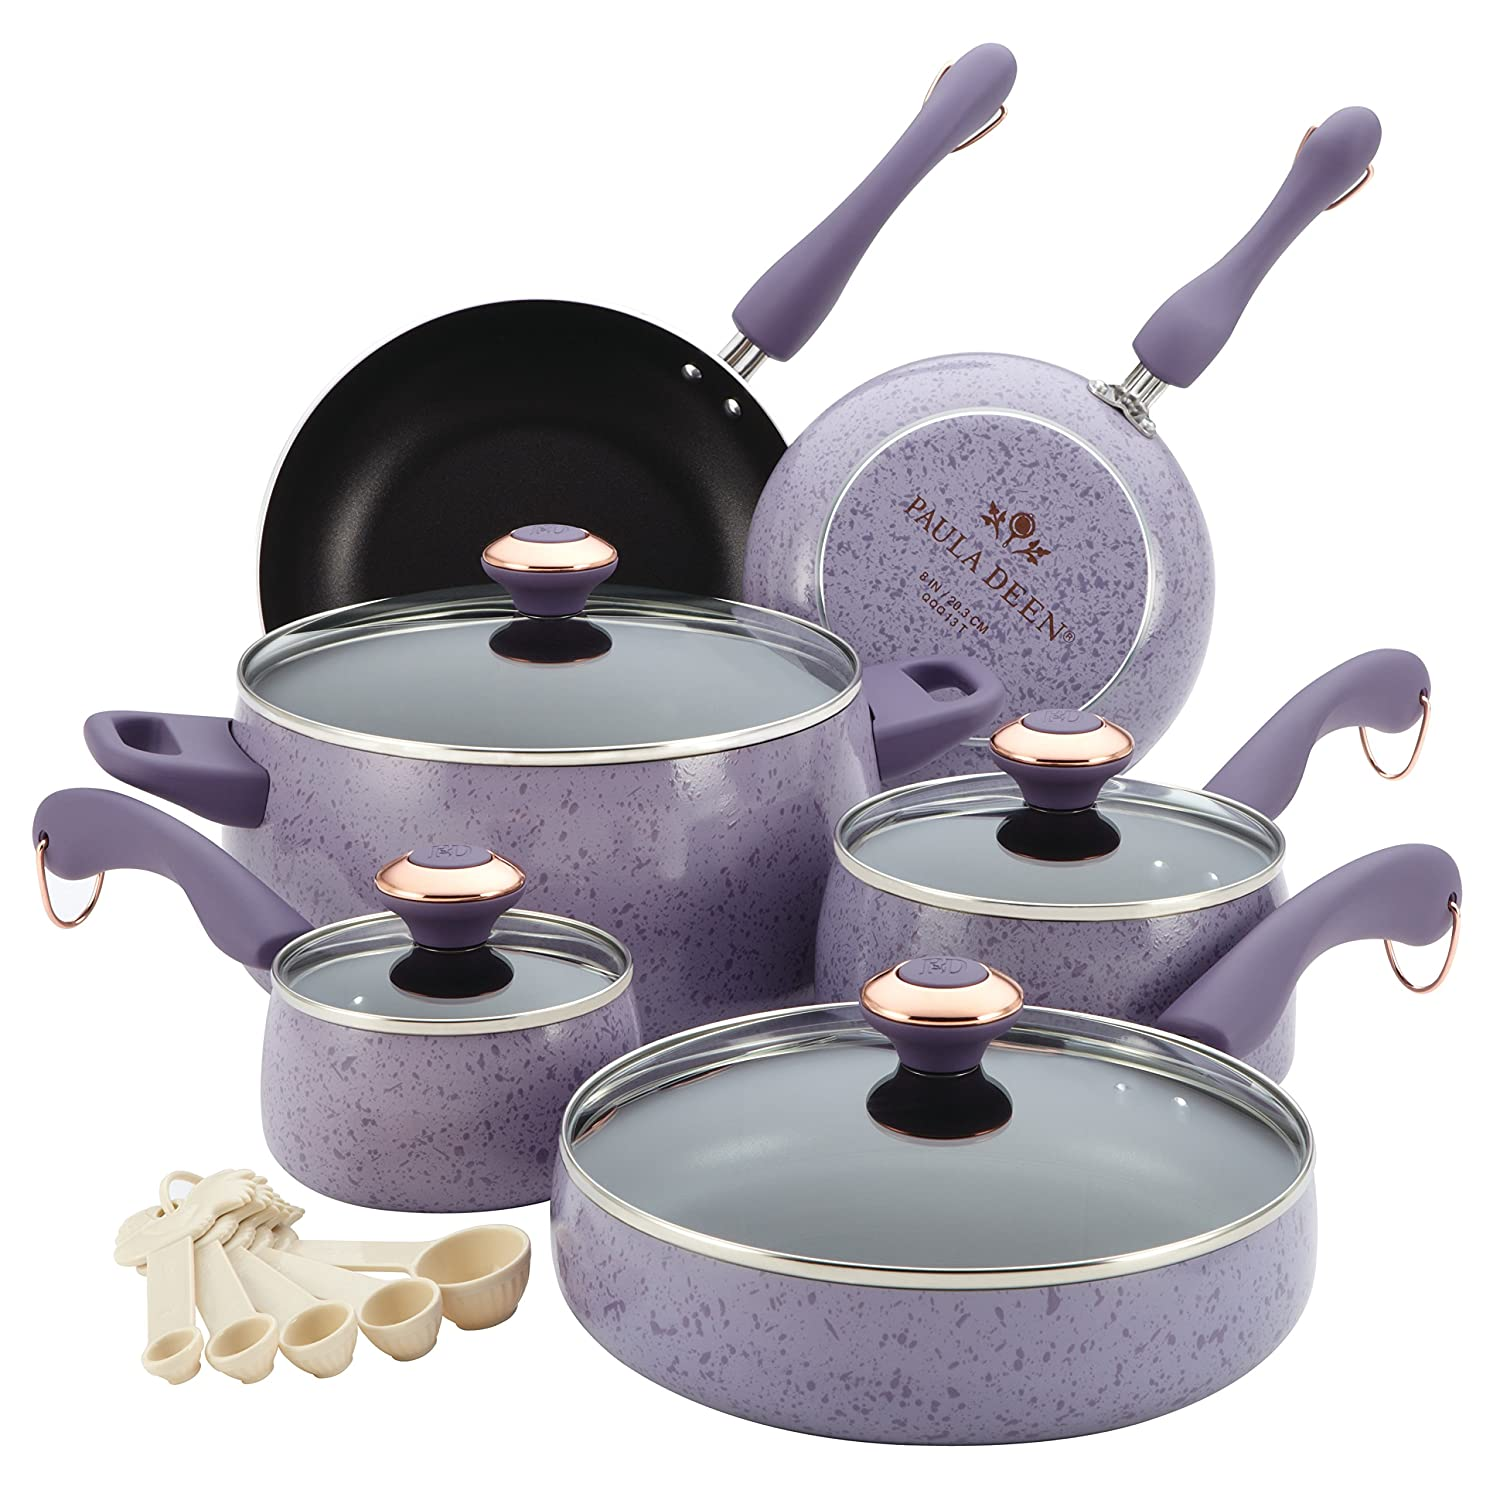 Best Cookware Set (2017 Edition) - Marvelous Chef